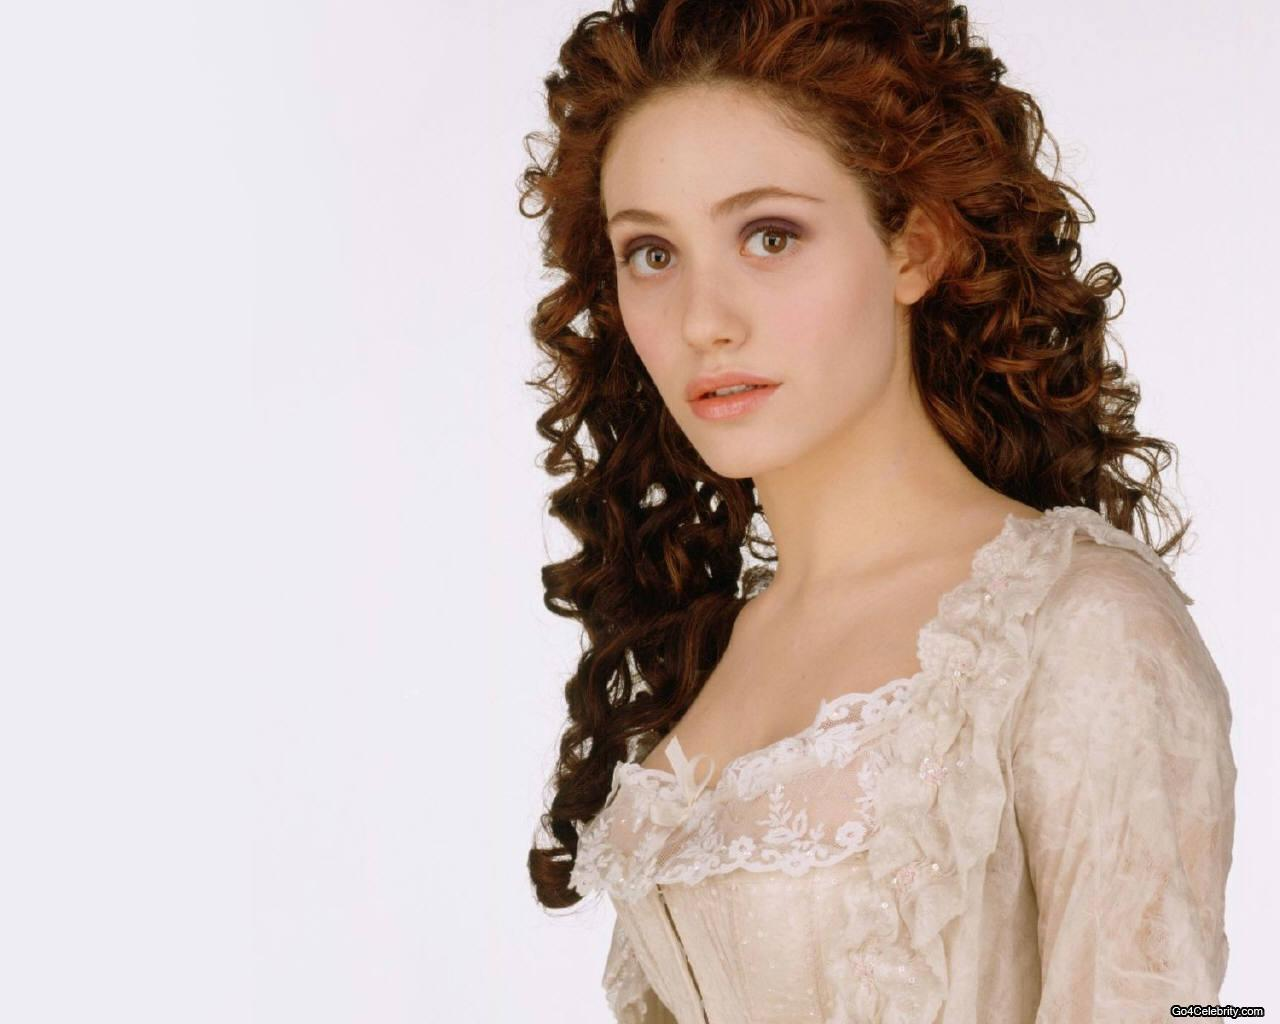 Emmy wallpaper - Emmy Rossum Wallpaper (3159620) - Fanpop Emmy Rossum Wallpaper